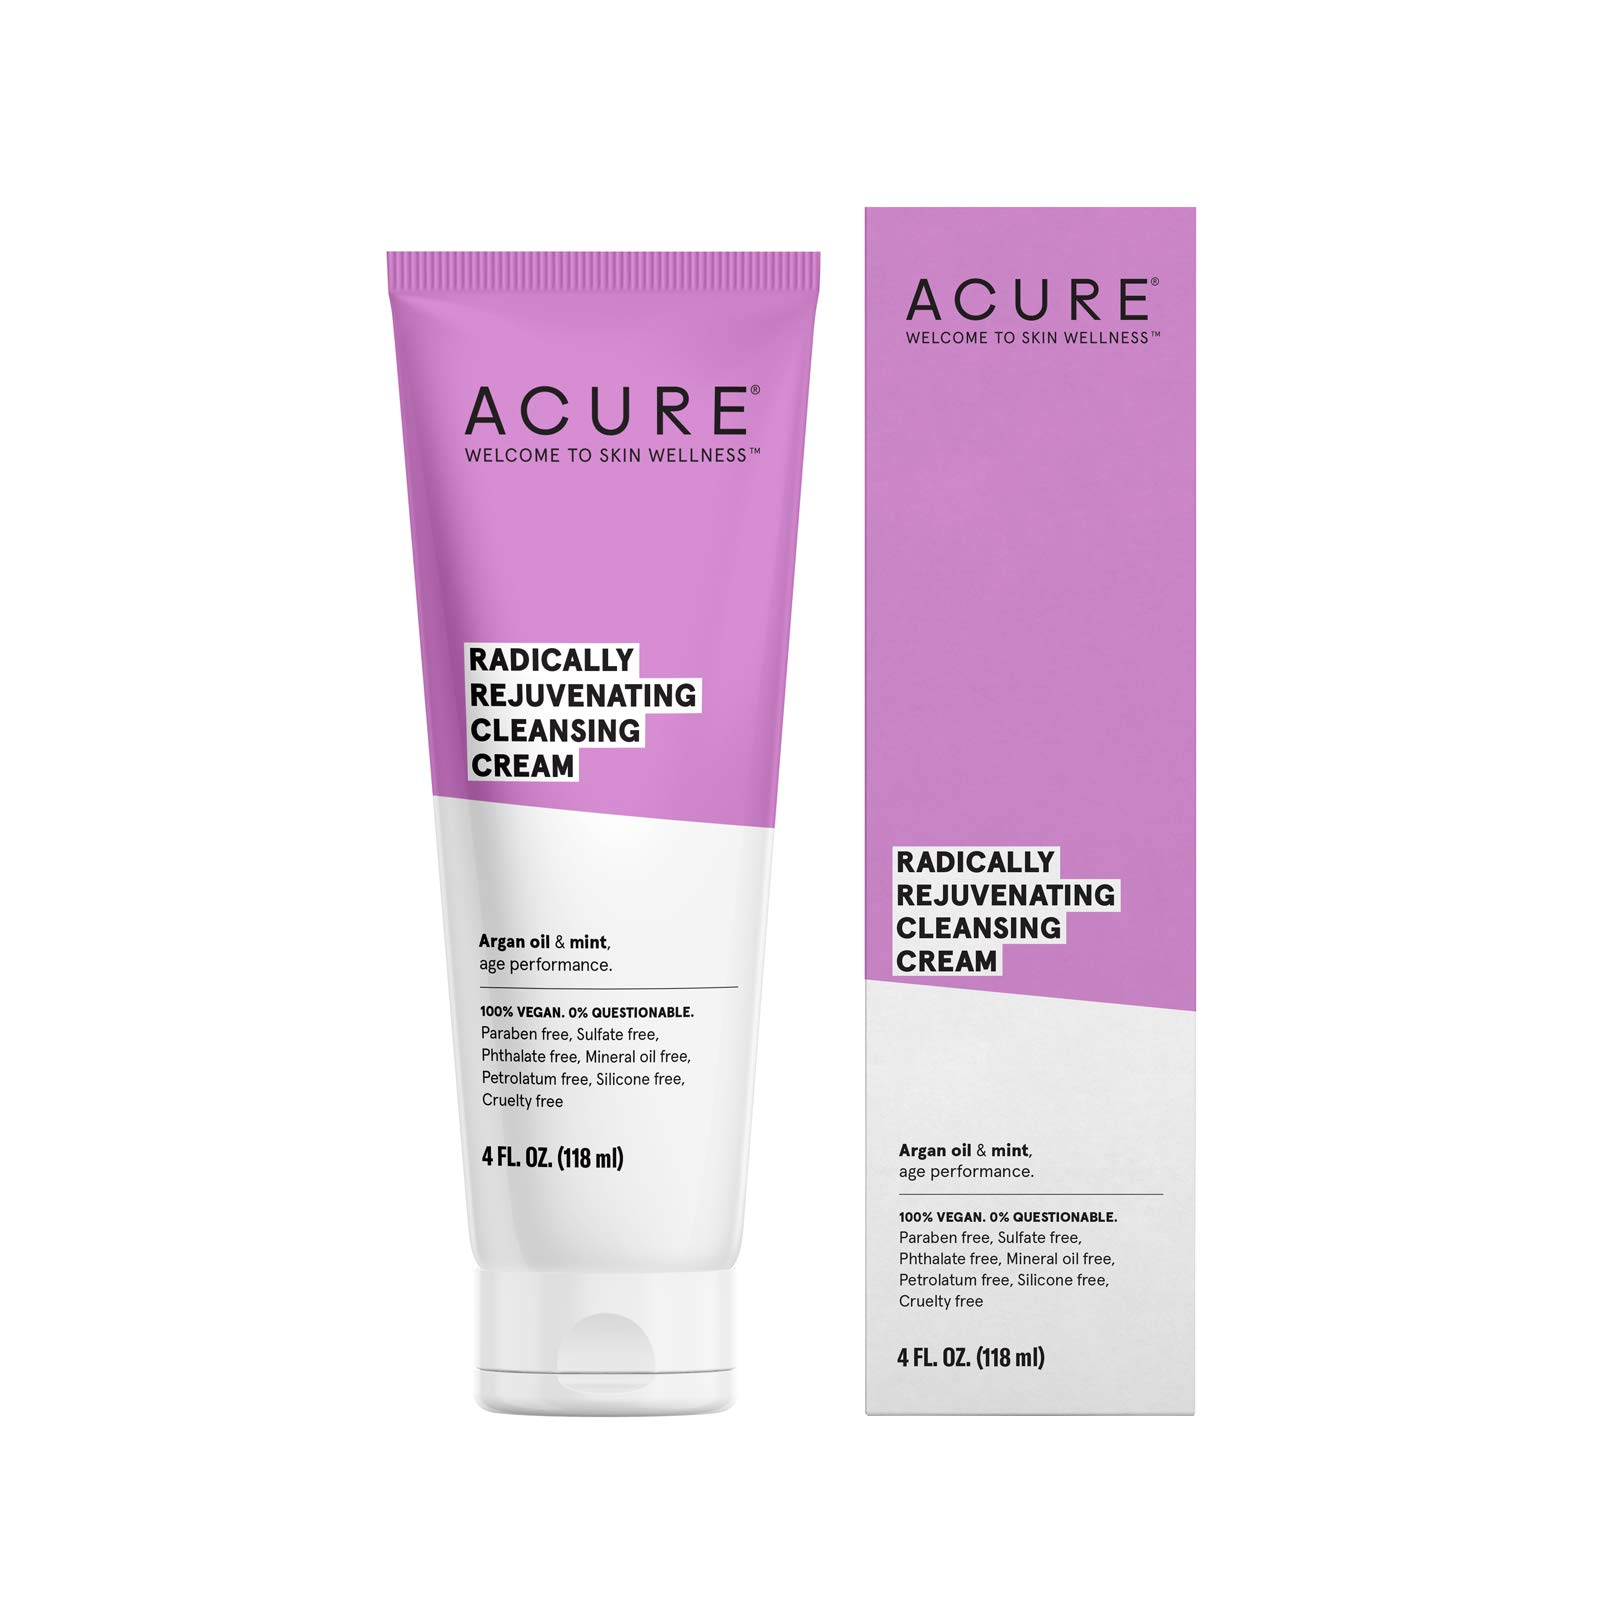 ACURE Radically Rejuvenating Cleansing Cream | 100% Vegan | Provides Anti-Aging Support | Olive Oil & Mint - Rejuvenates, Refreshes, Soothes & Cleanses | 4 Fl Oz